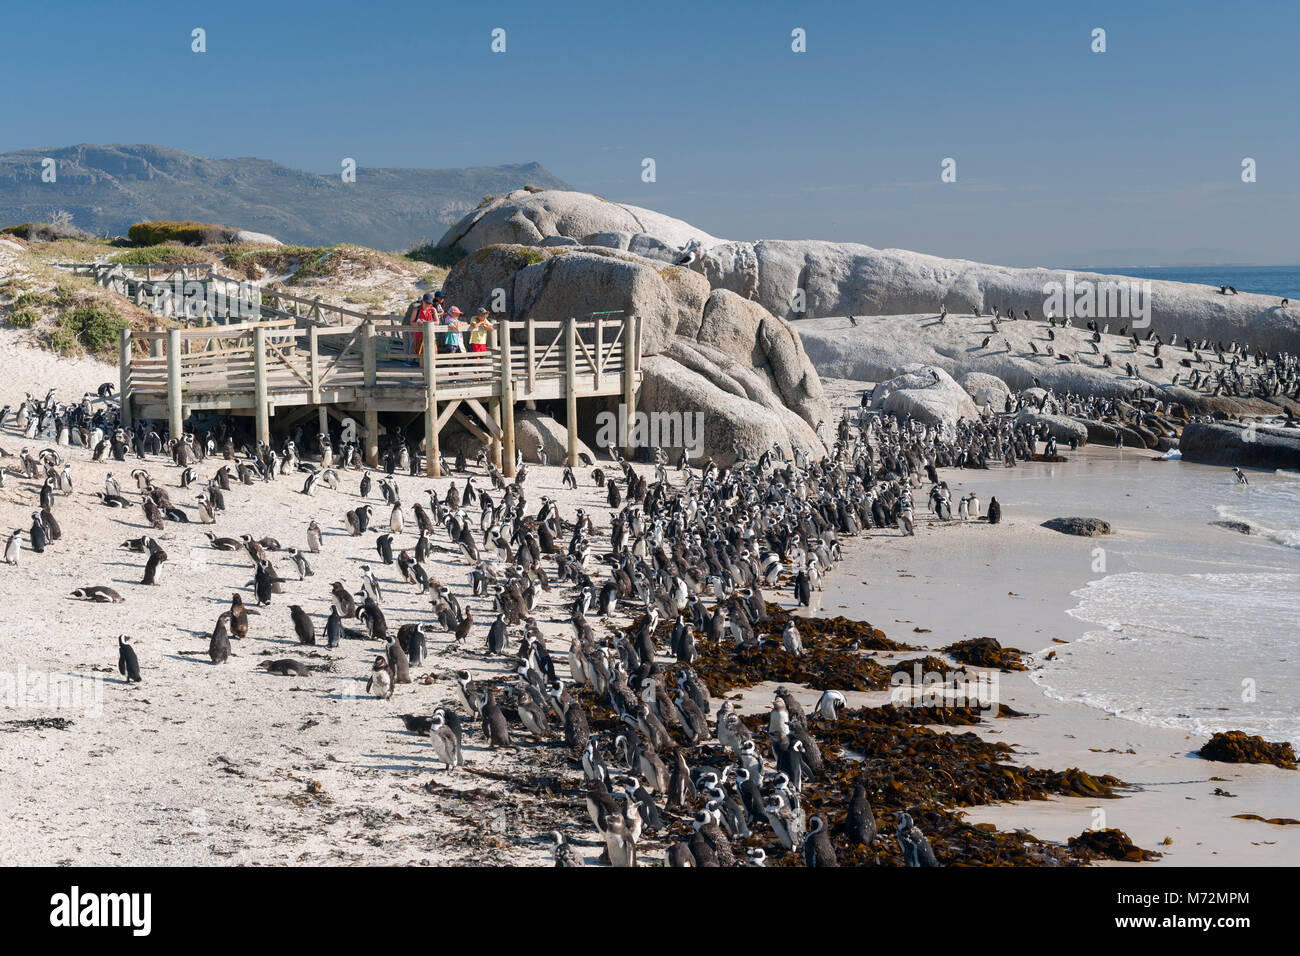 The penguin colony at Boulders beach in Cape Town. - Stock Image